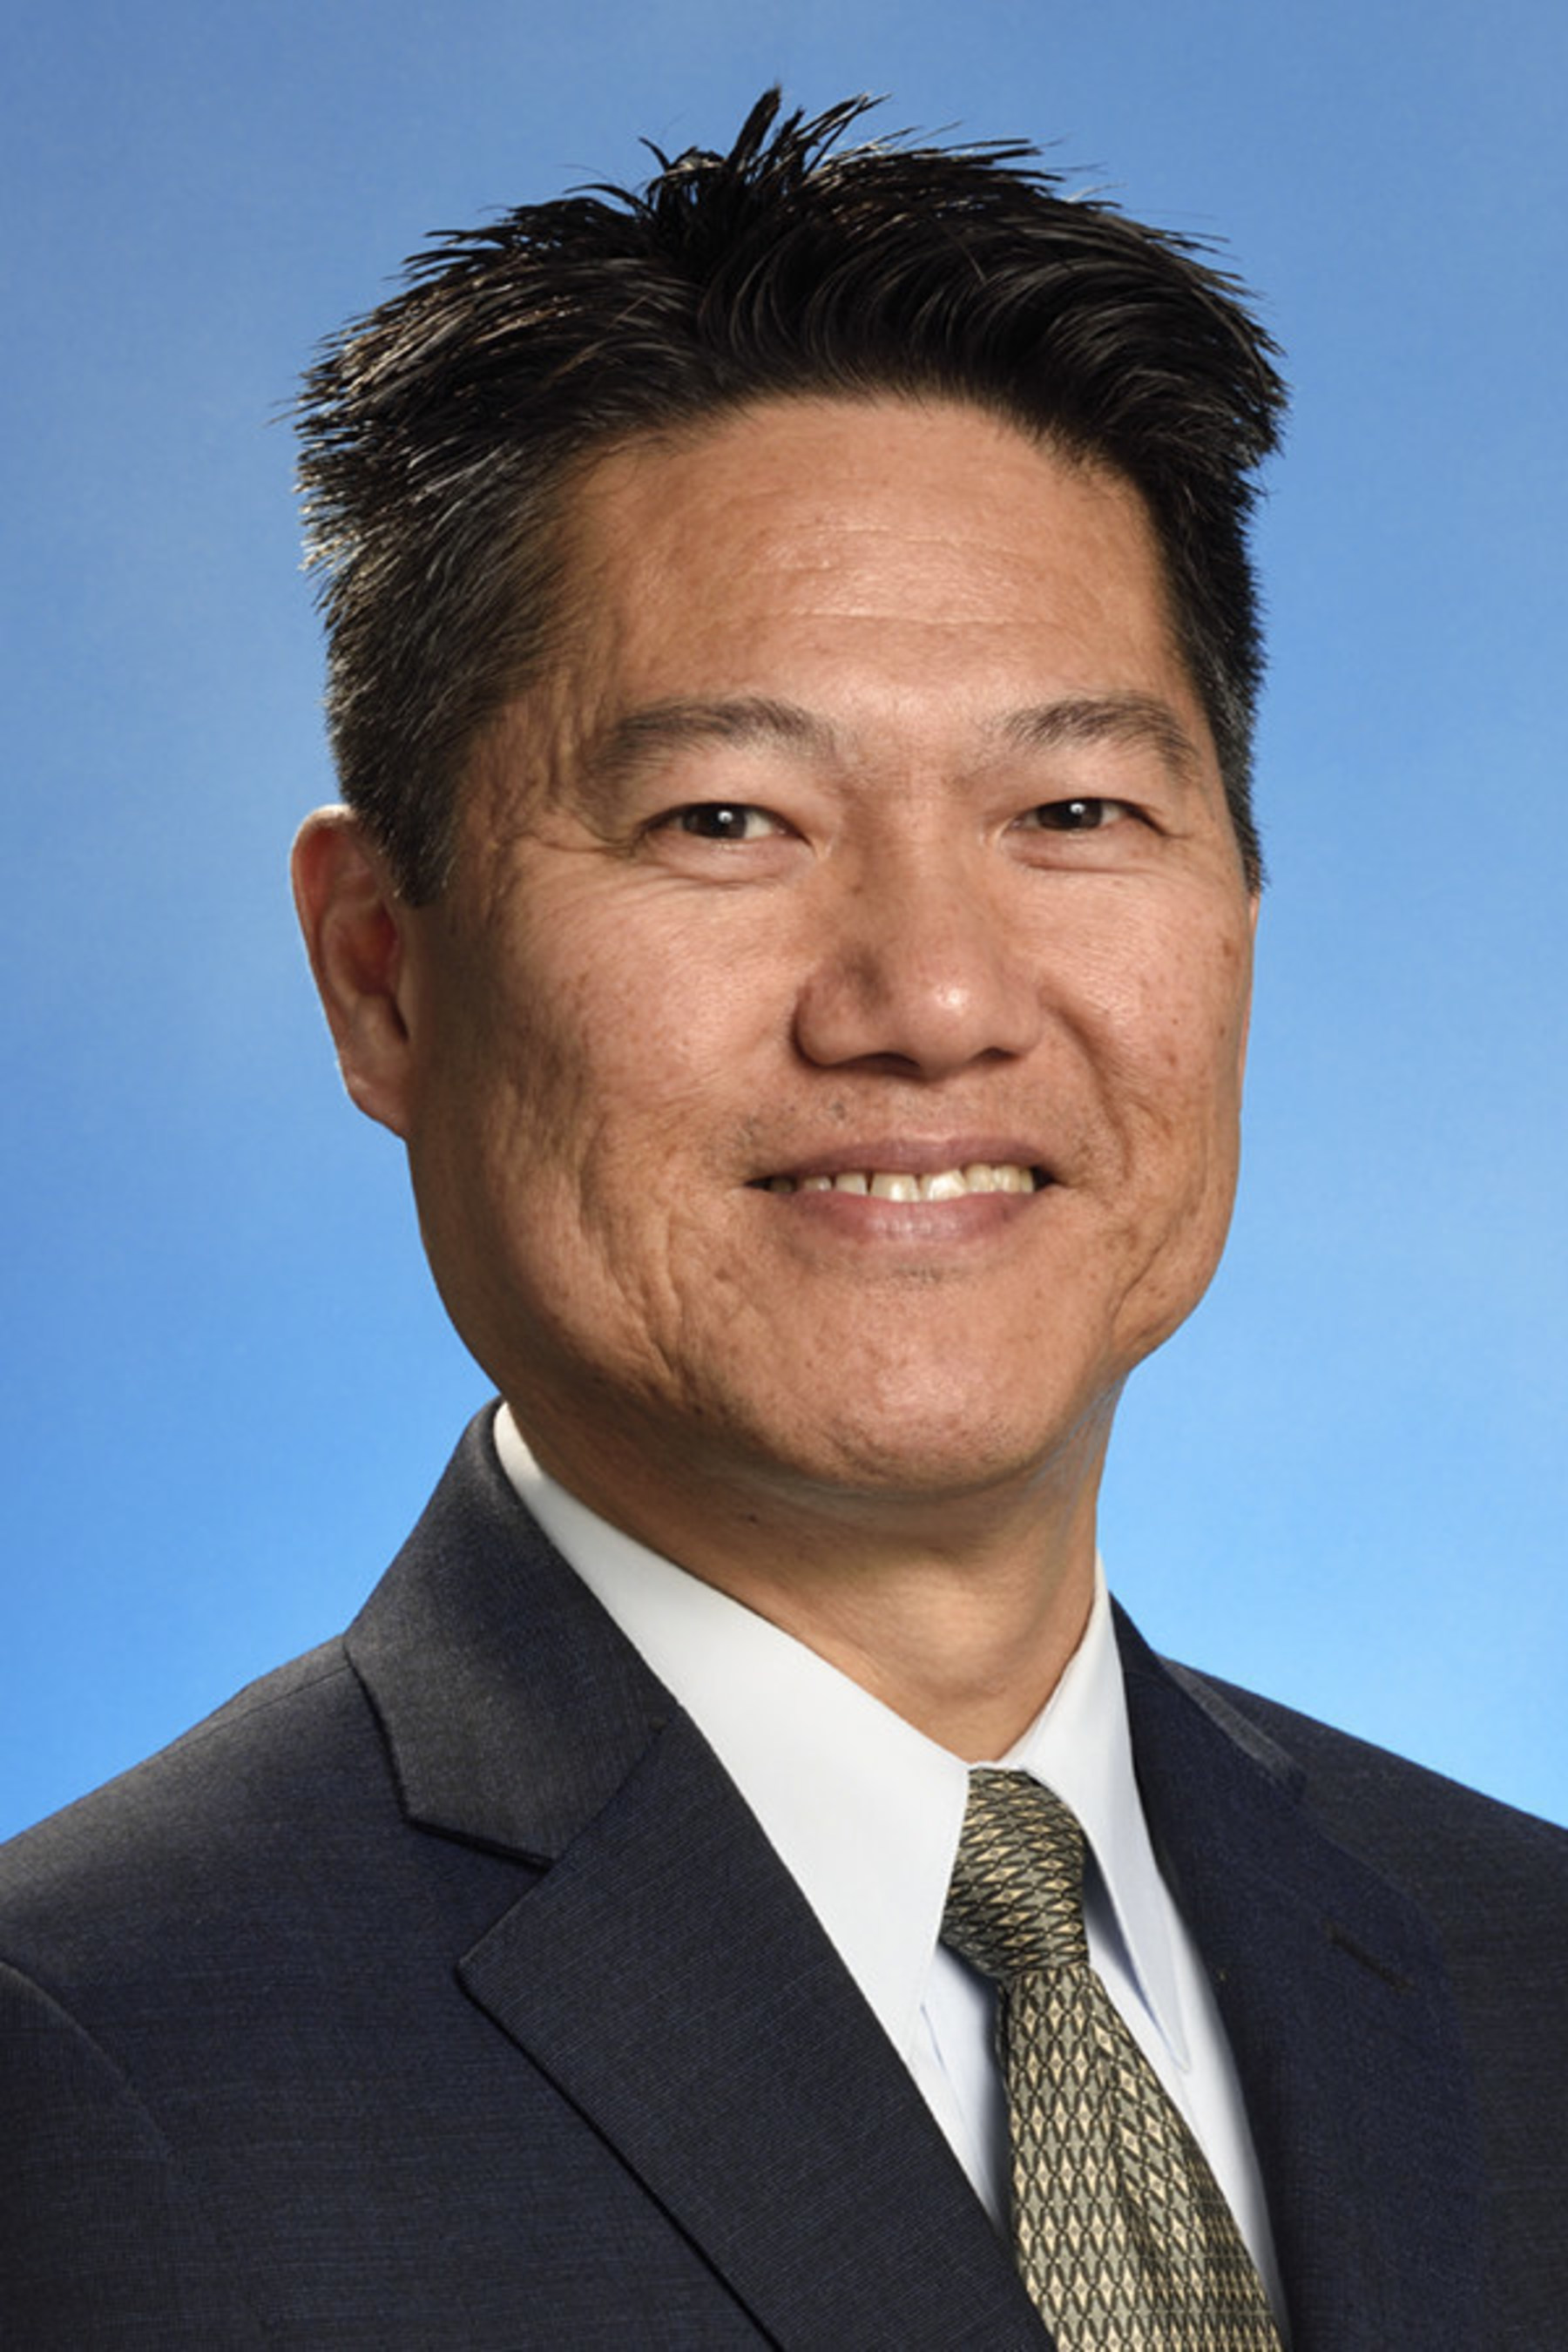 dB Control Welcomes 25-Year RF / Microwave Industry Veteran Michael Lee as Director of Sales and Marketing